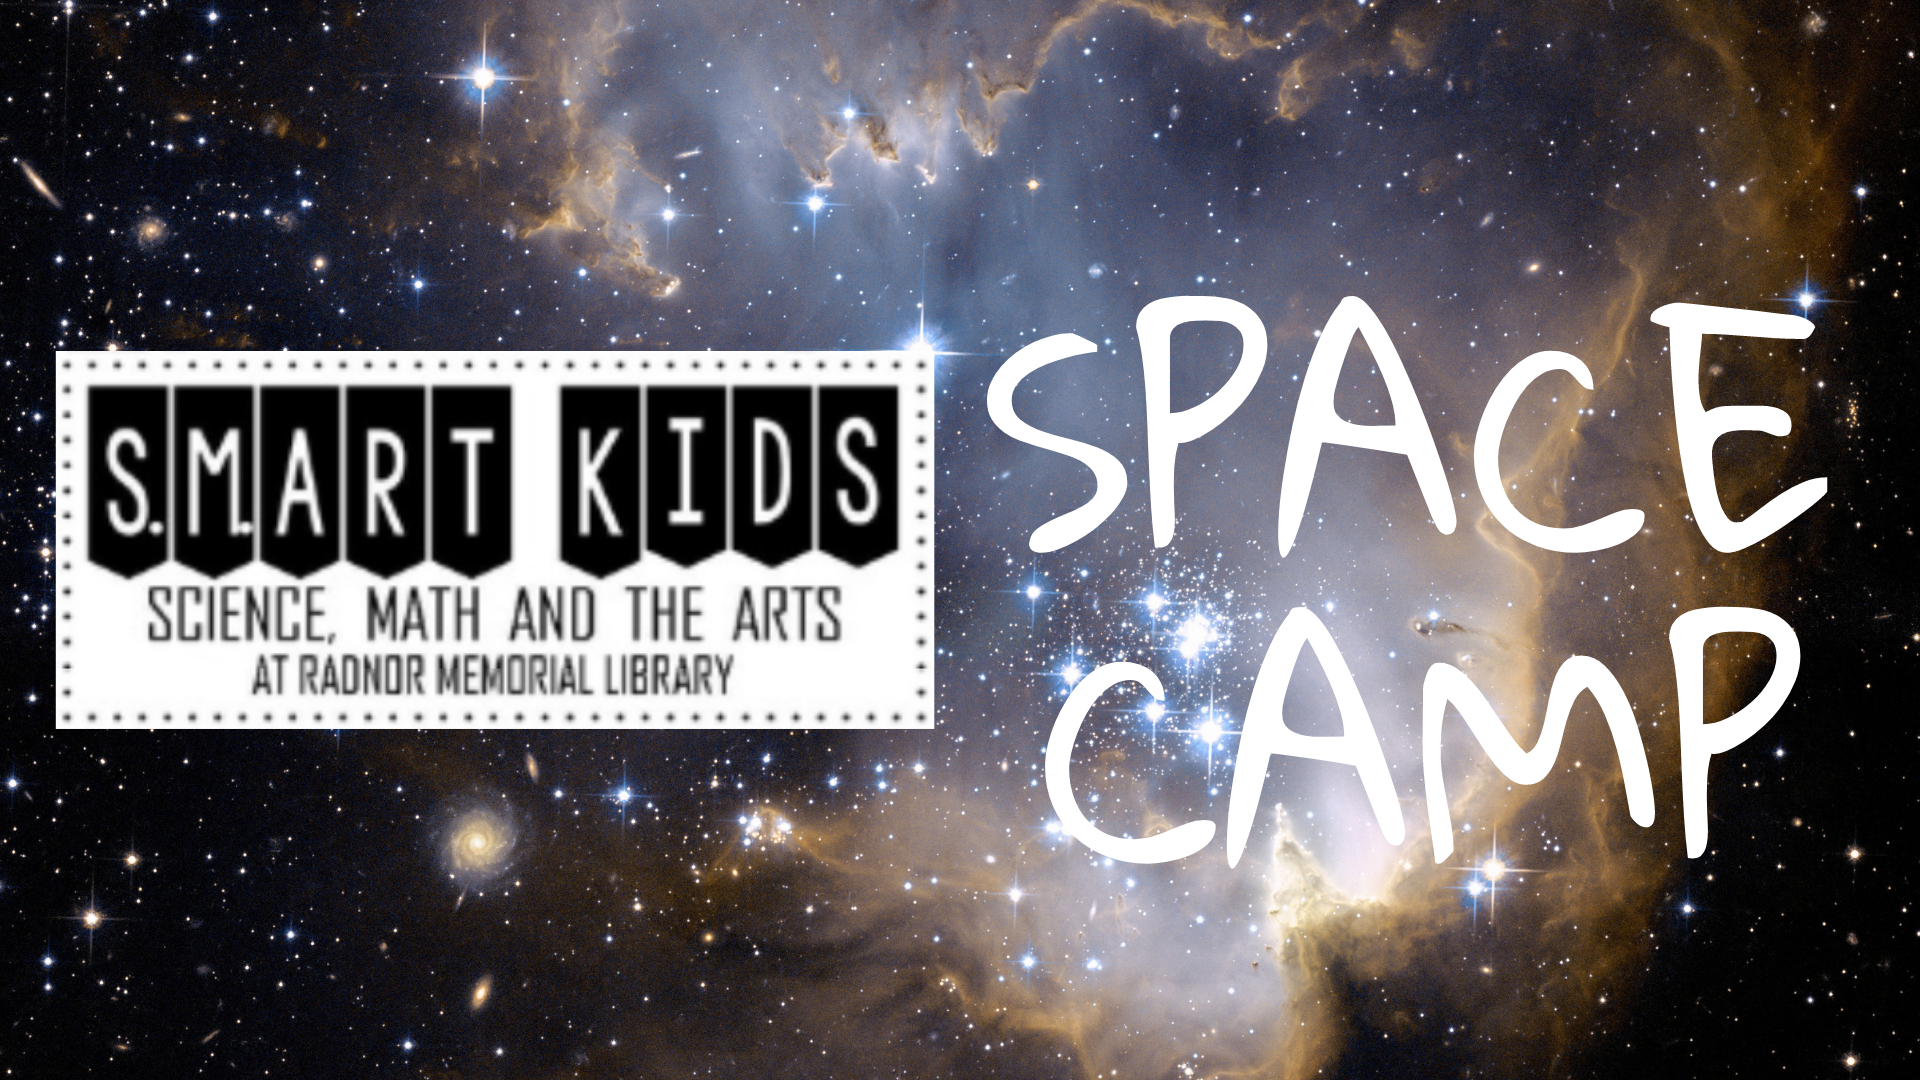 S.M.Art Kids: Space Camp - Advanced Training